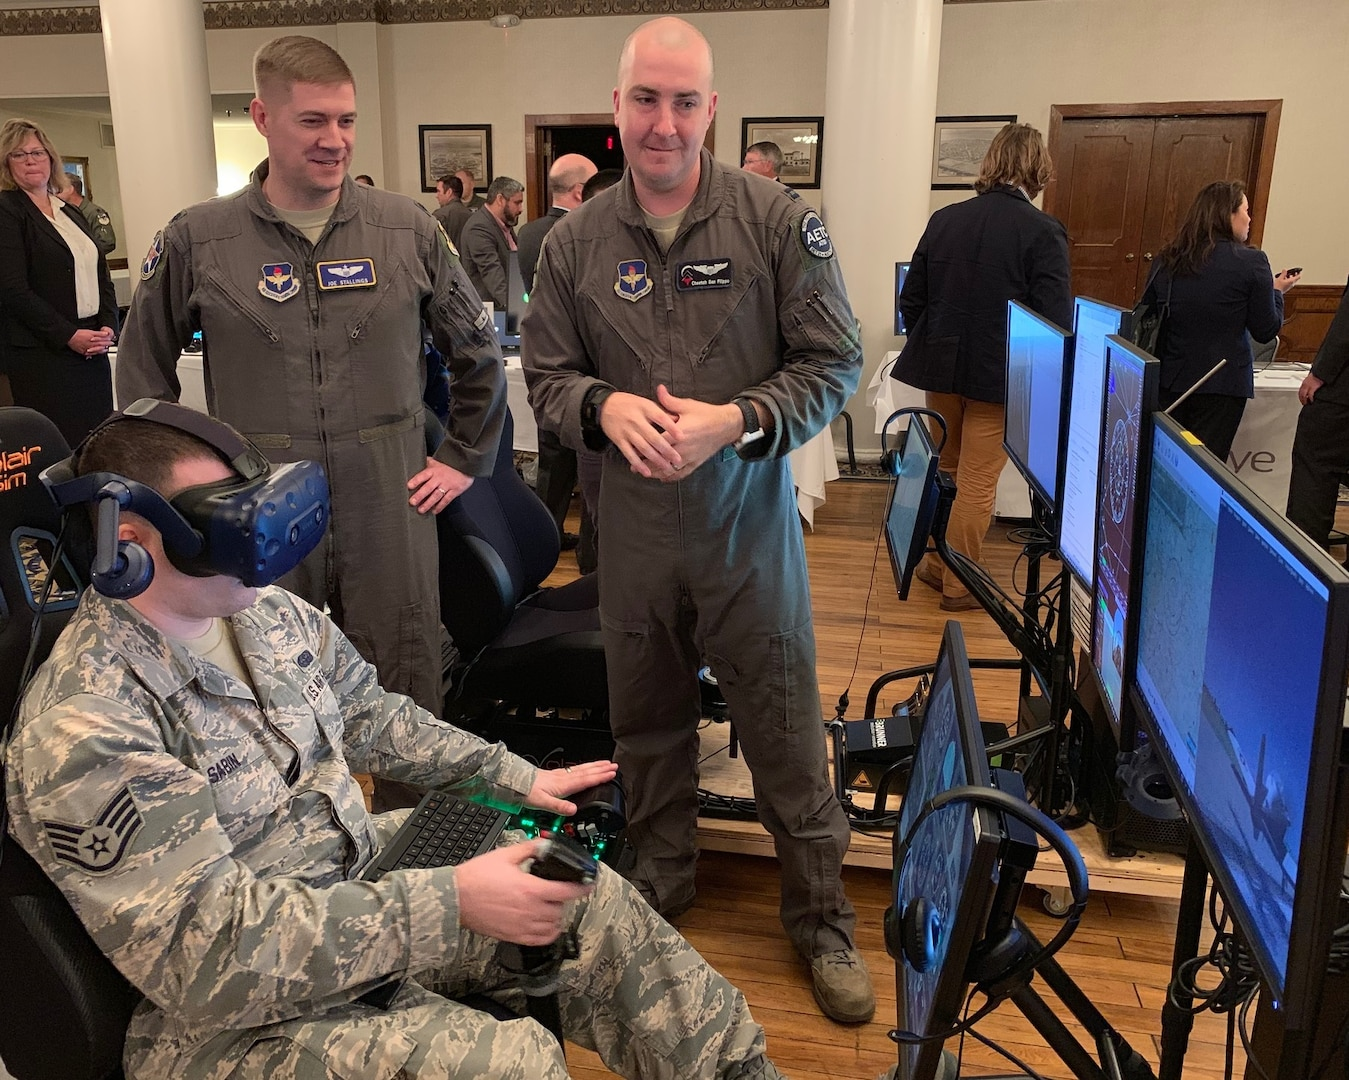 Lt. Col. Joe Stallings (left), 12th Flying Training Wing Innovation Director, and Capt. Calogero San Filippo (right), Pilot Training Next instructor pilot, discuss virtual-reality flying technology while Staff Sgt. Joseph Sabin, Air Education and Training Command Technology Integration Detachment, flies a VR sortie at the PTN Technology Expo at Joint Base San Antonio-Randolph March 12. Flying training wings will formally begin integrating innovations from PTN into the undergraduate pilot training curriculum beginning May 31, 2019.